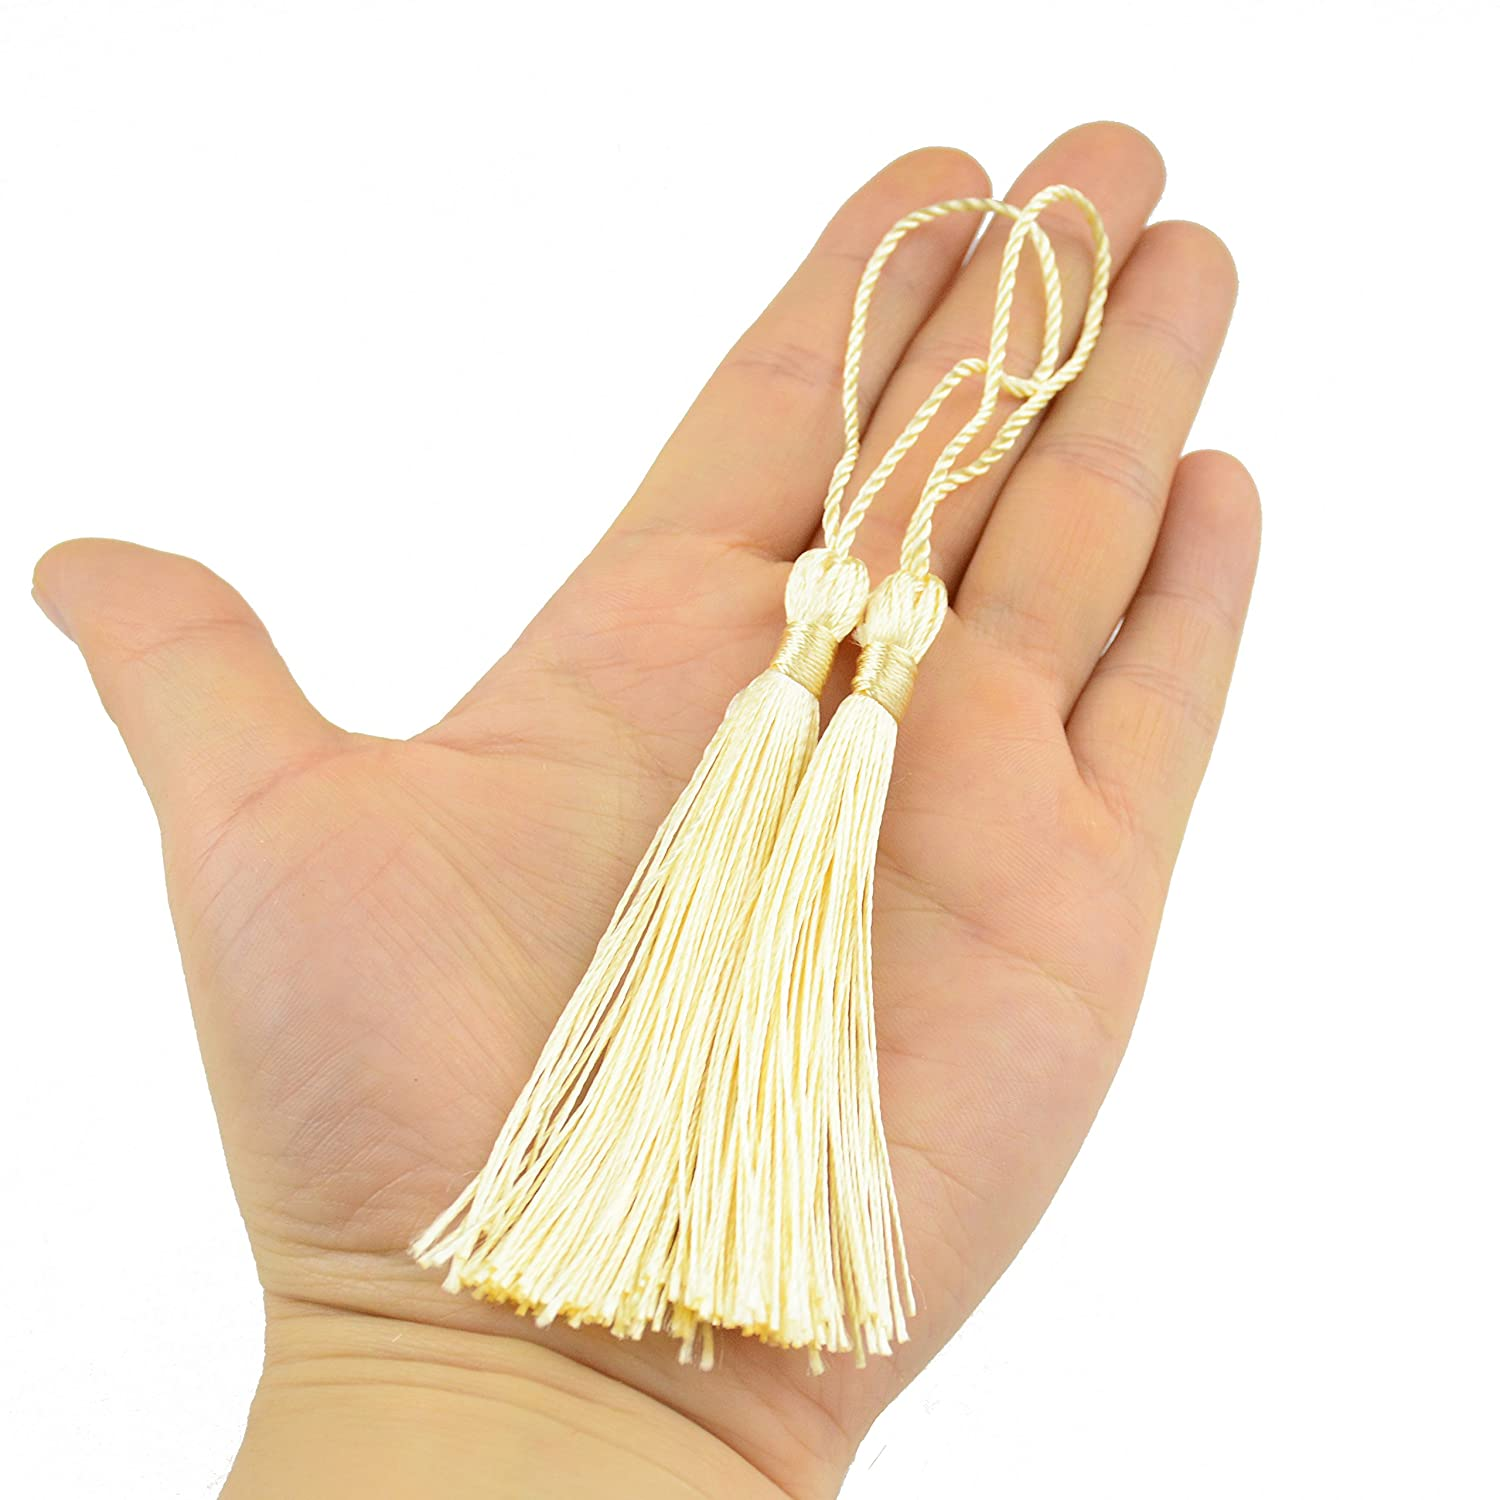 DIY Craft Accessory 100pcs 13cm//5 Inch Silky Floss Bookmark Tassels with 2-Inch Cord Loop and Small Chinese Knot for Jewelry Making Light Violet Bookmarks Souvenir